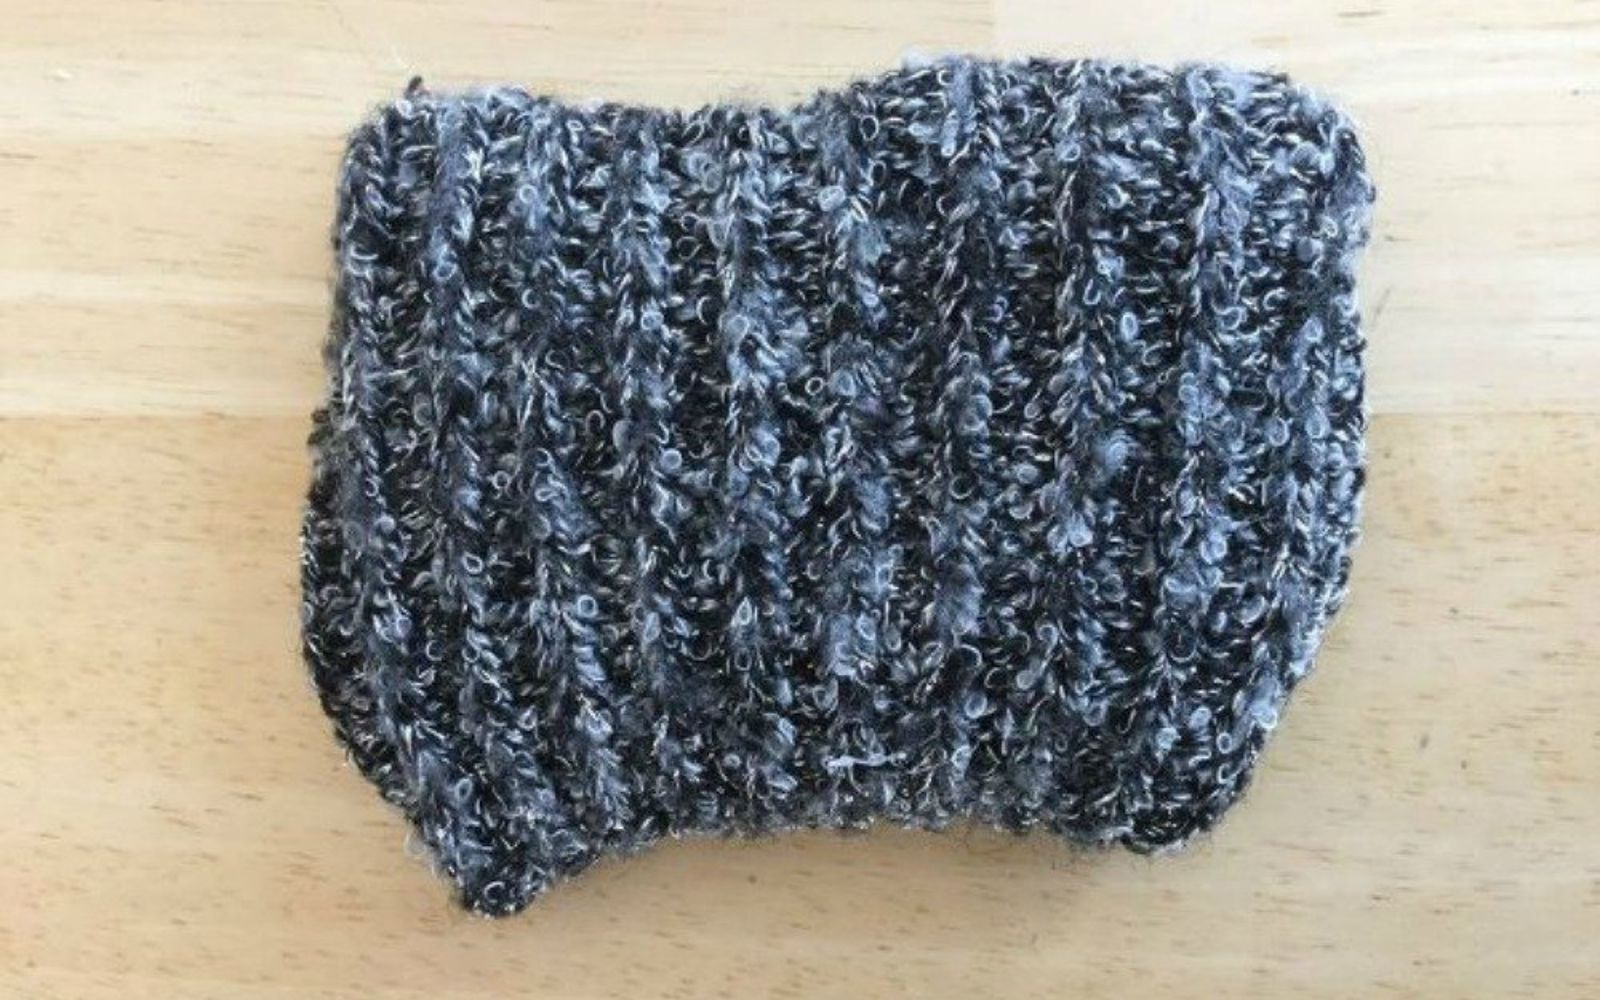 s 15 reasons not to trash your ugly worn out sweaters, crafts, repurposing upcycling, Or make your own mini hand warmers